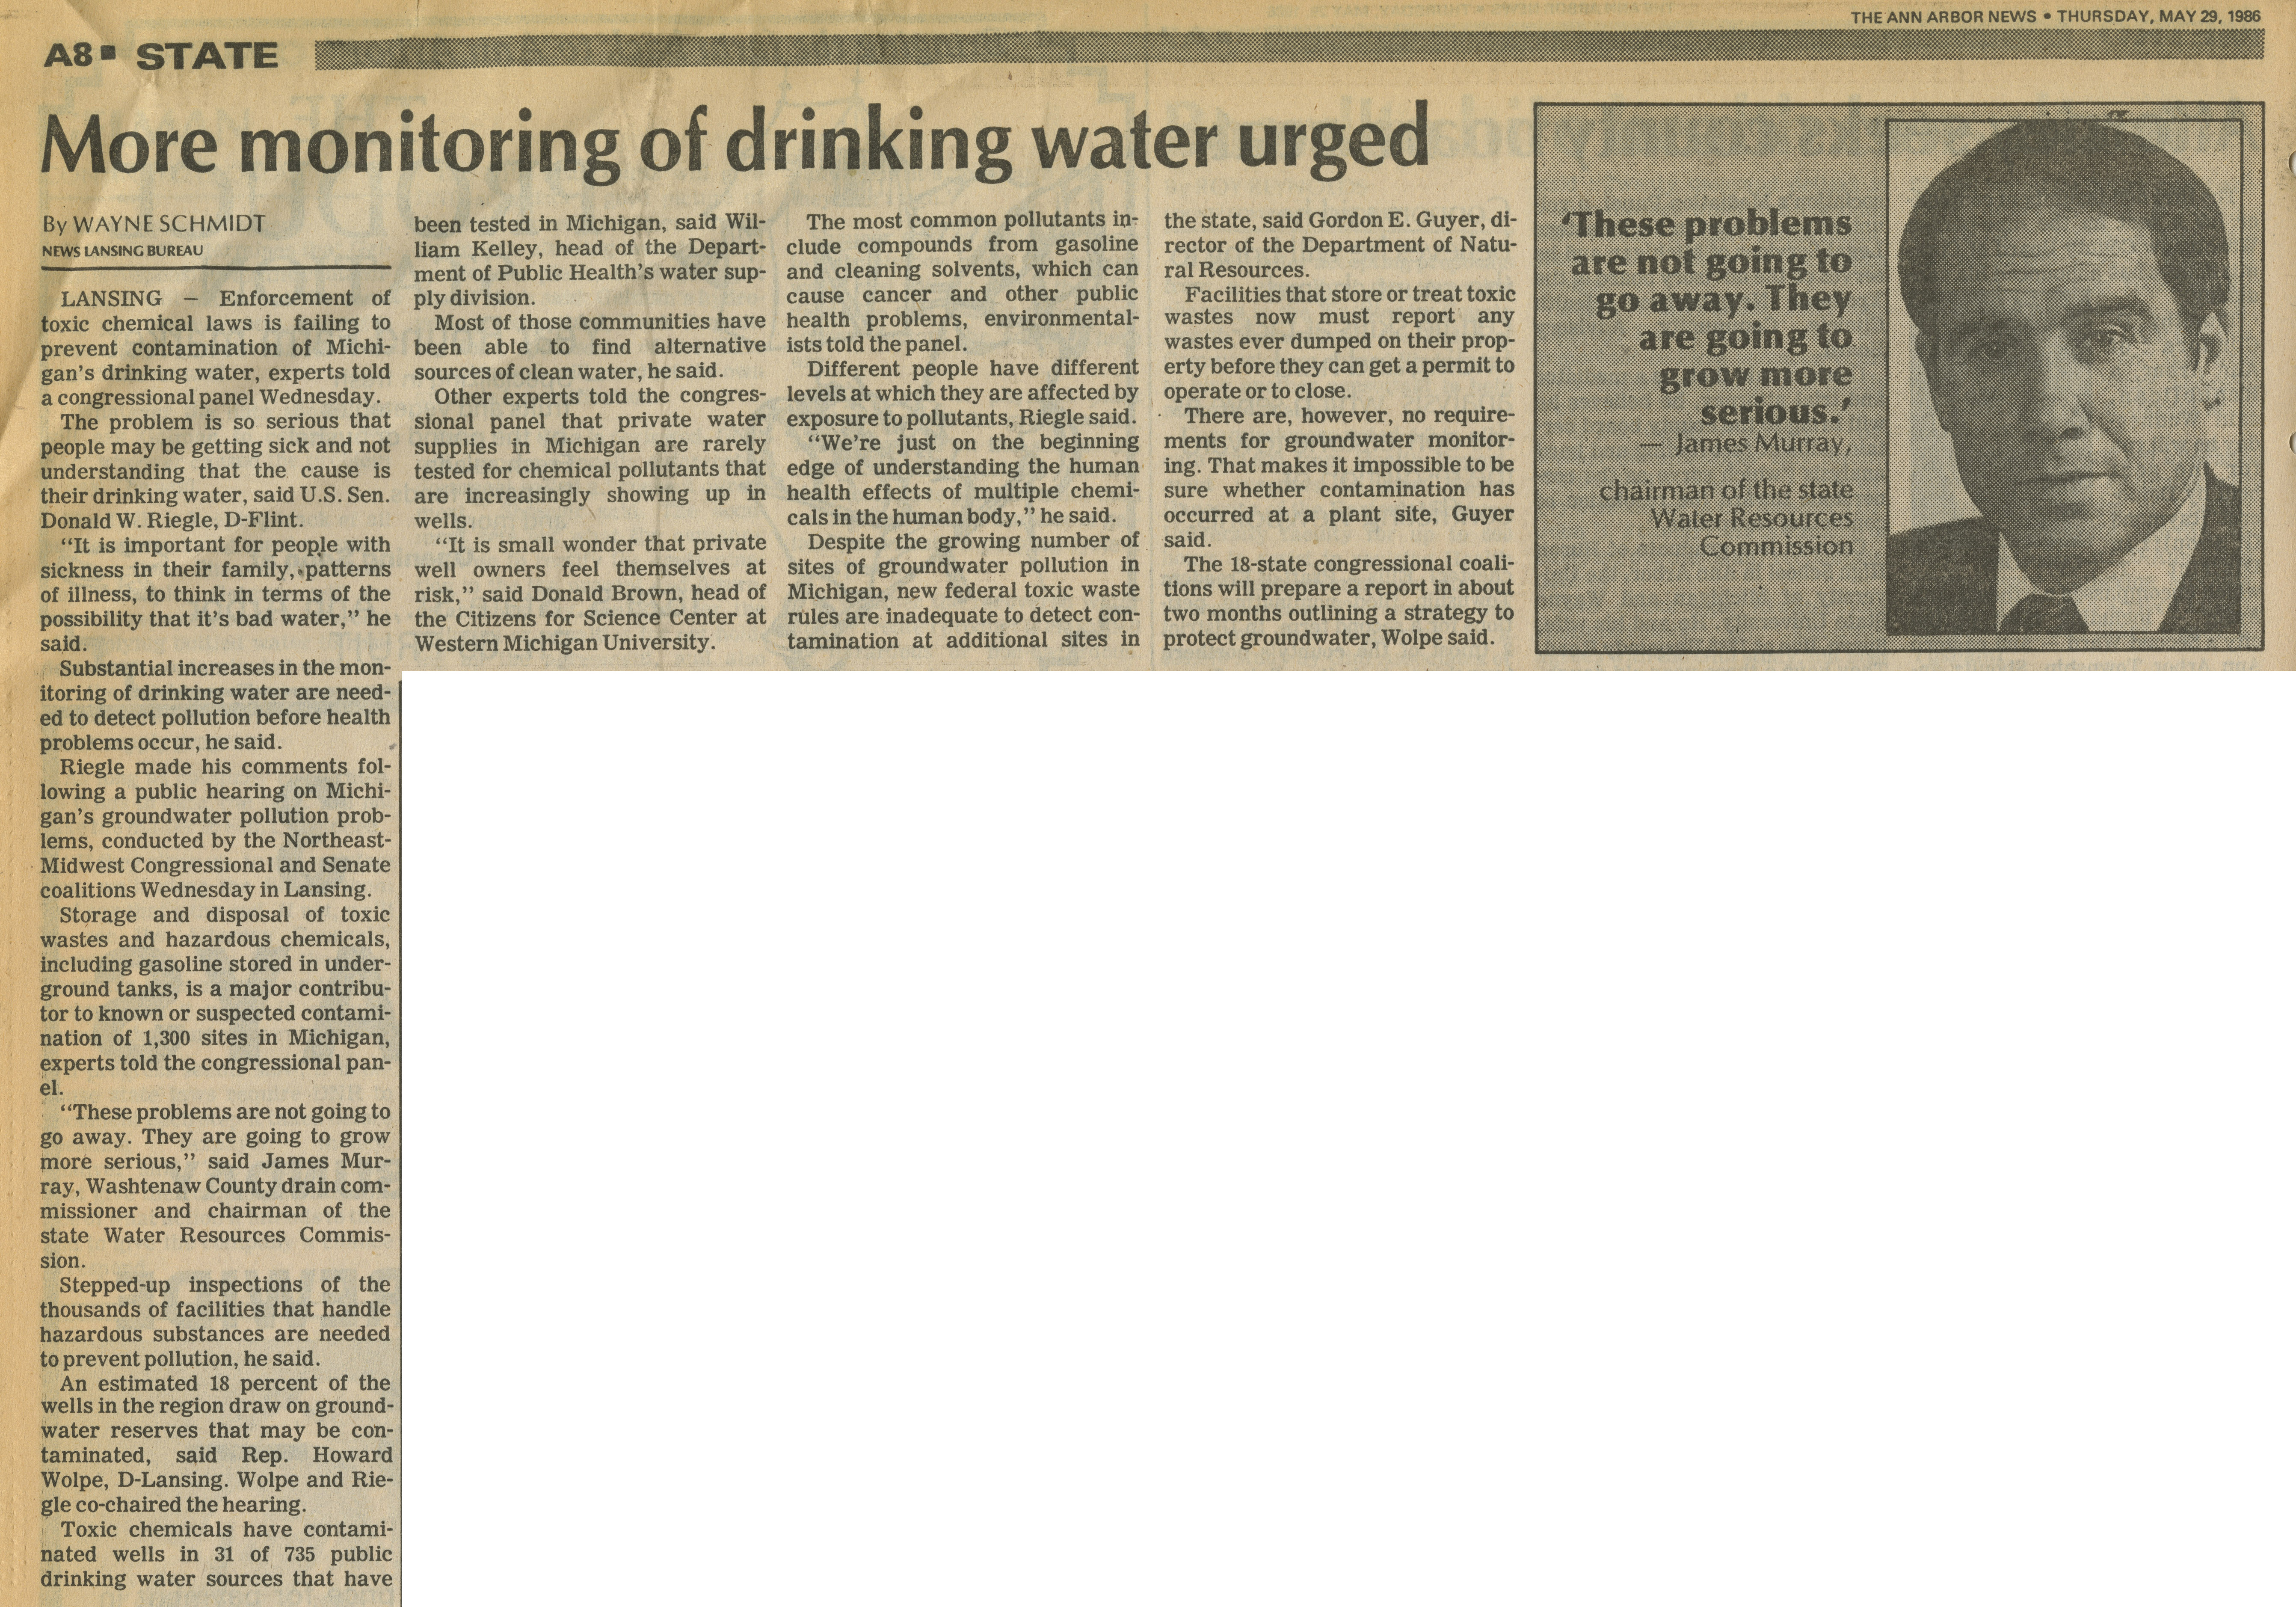 More monitoring of drinking water urged image